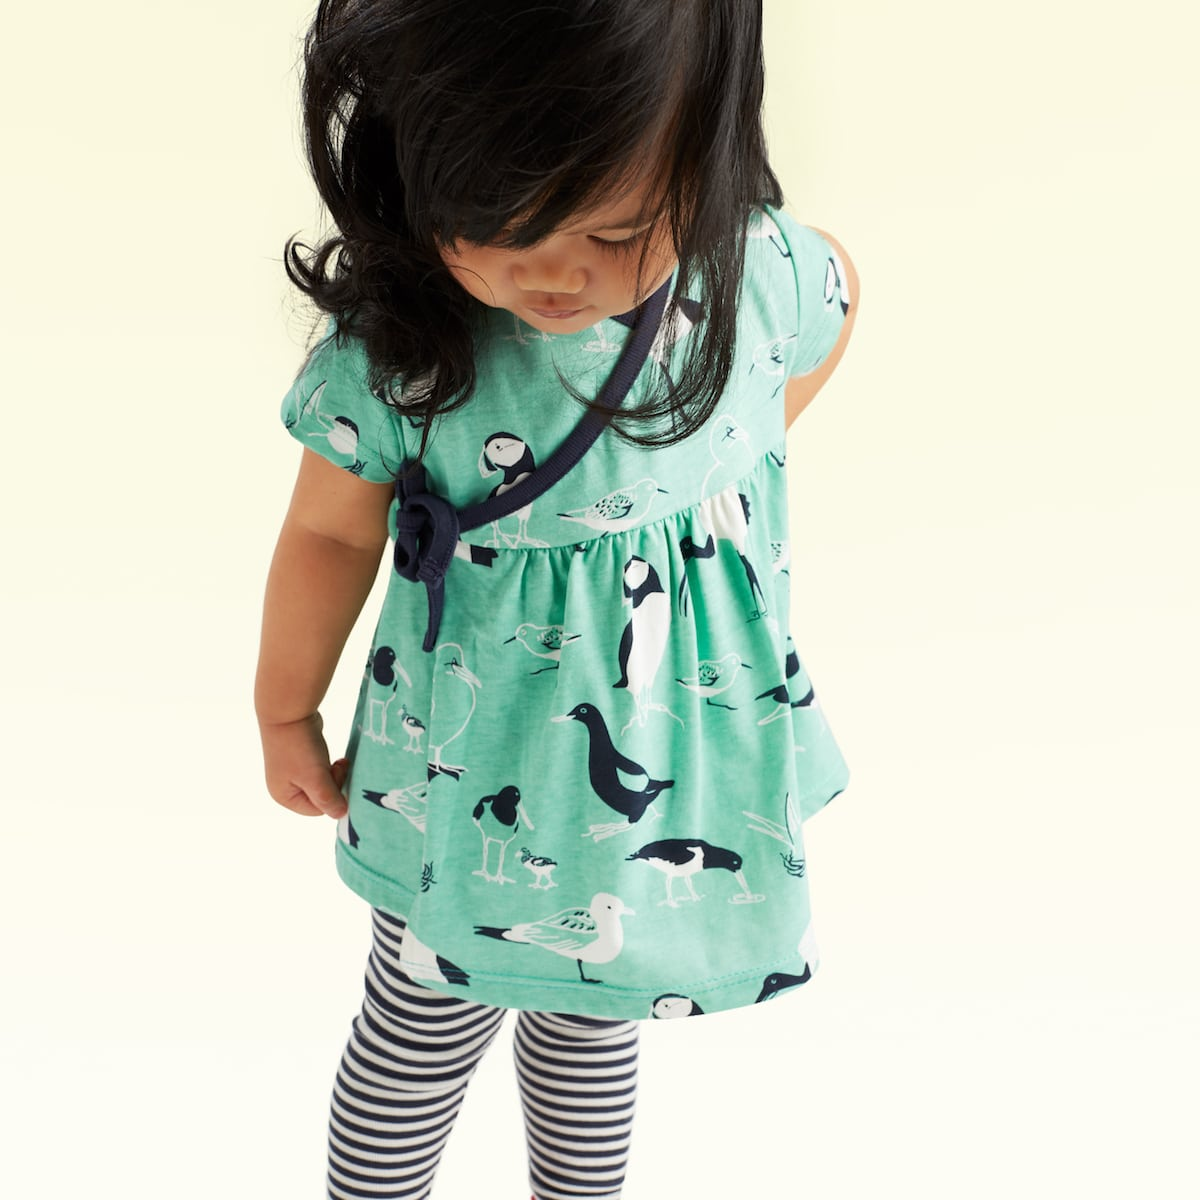 Tea Collection Fall Styles For Girls The Naptime Reviewer